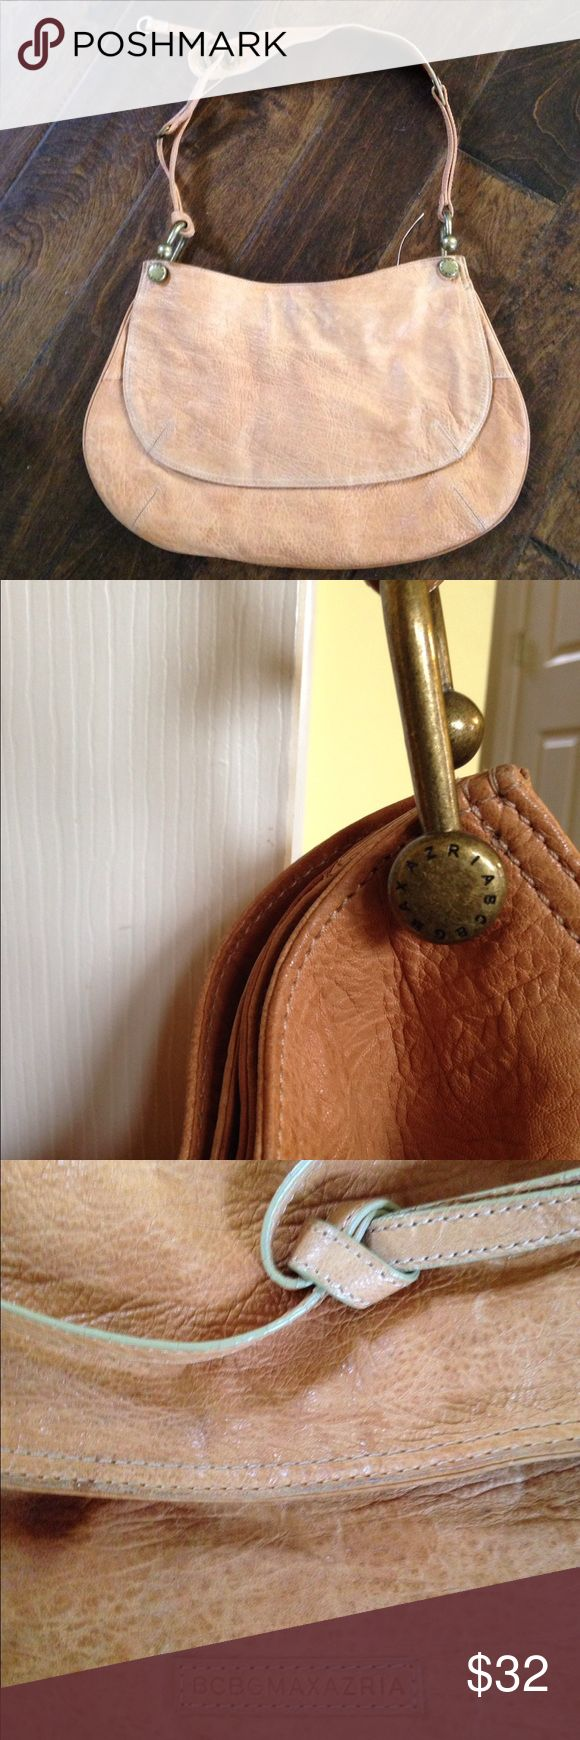 BCBG hobo style bag/purse.  Soft gorgeous leather BCBG hobo style bag/purse.  Soft gorgeous leather.  The 3rd pic is the most accurate color.  It's a nude shade.  A must for daily bag! BCBG Bags